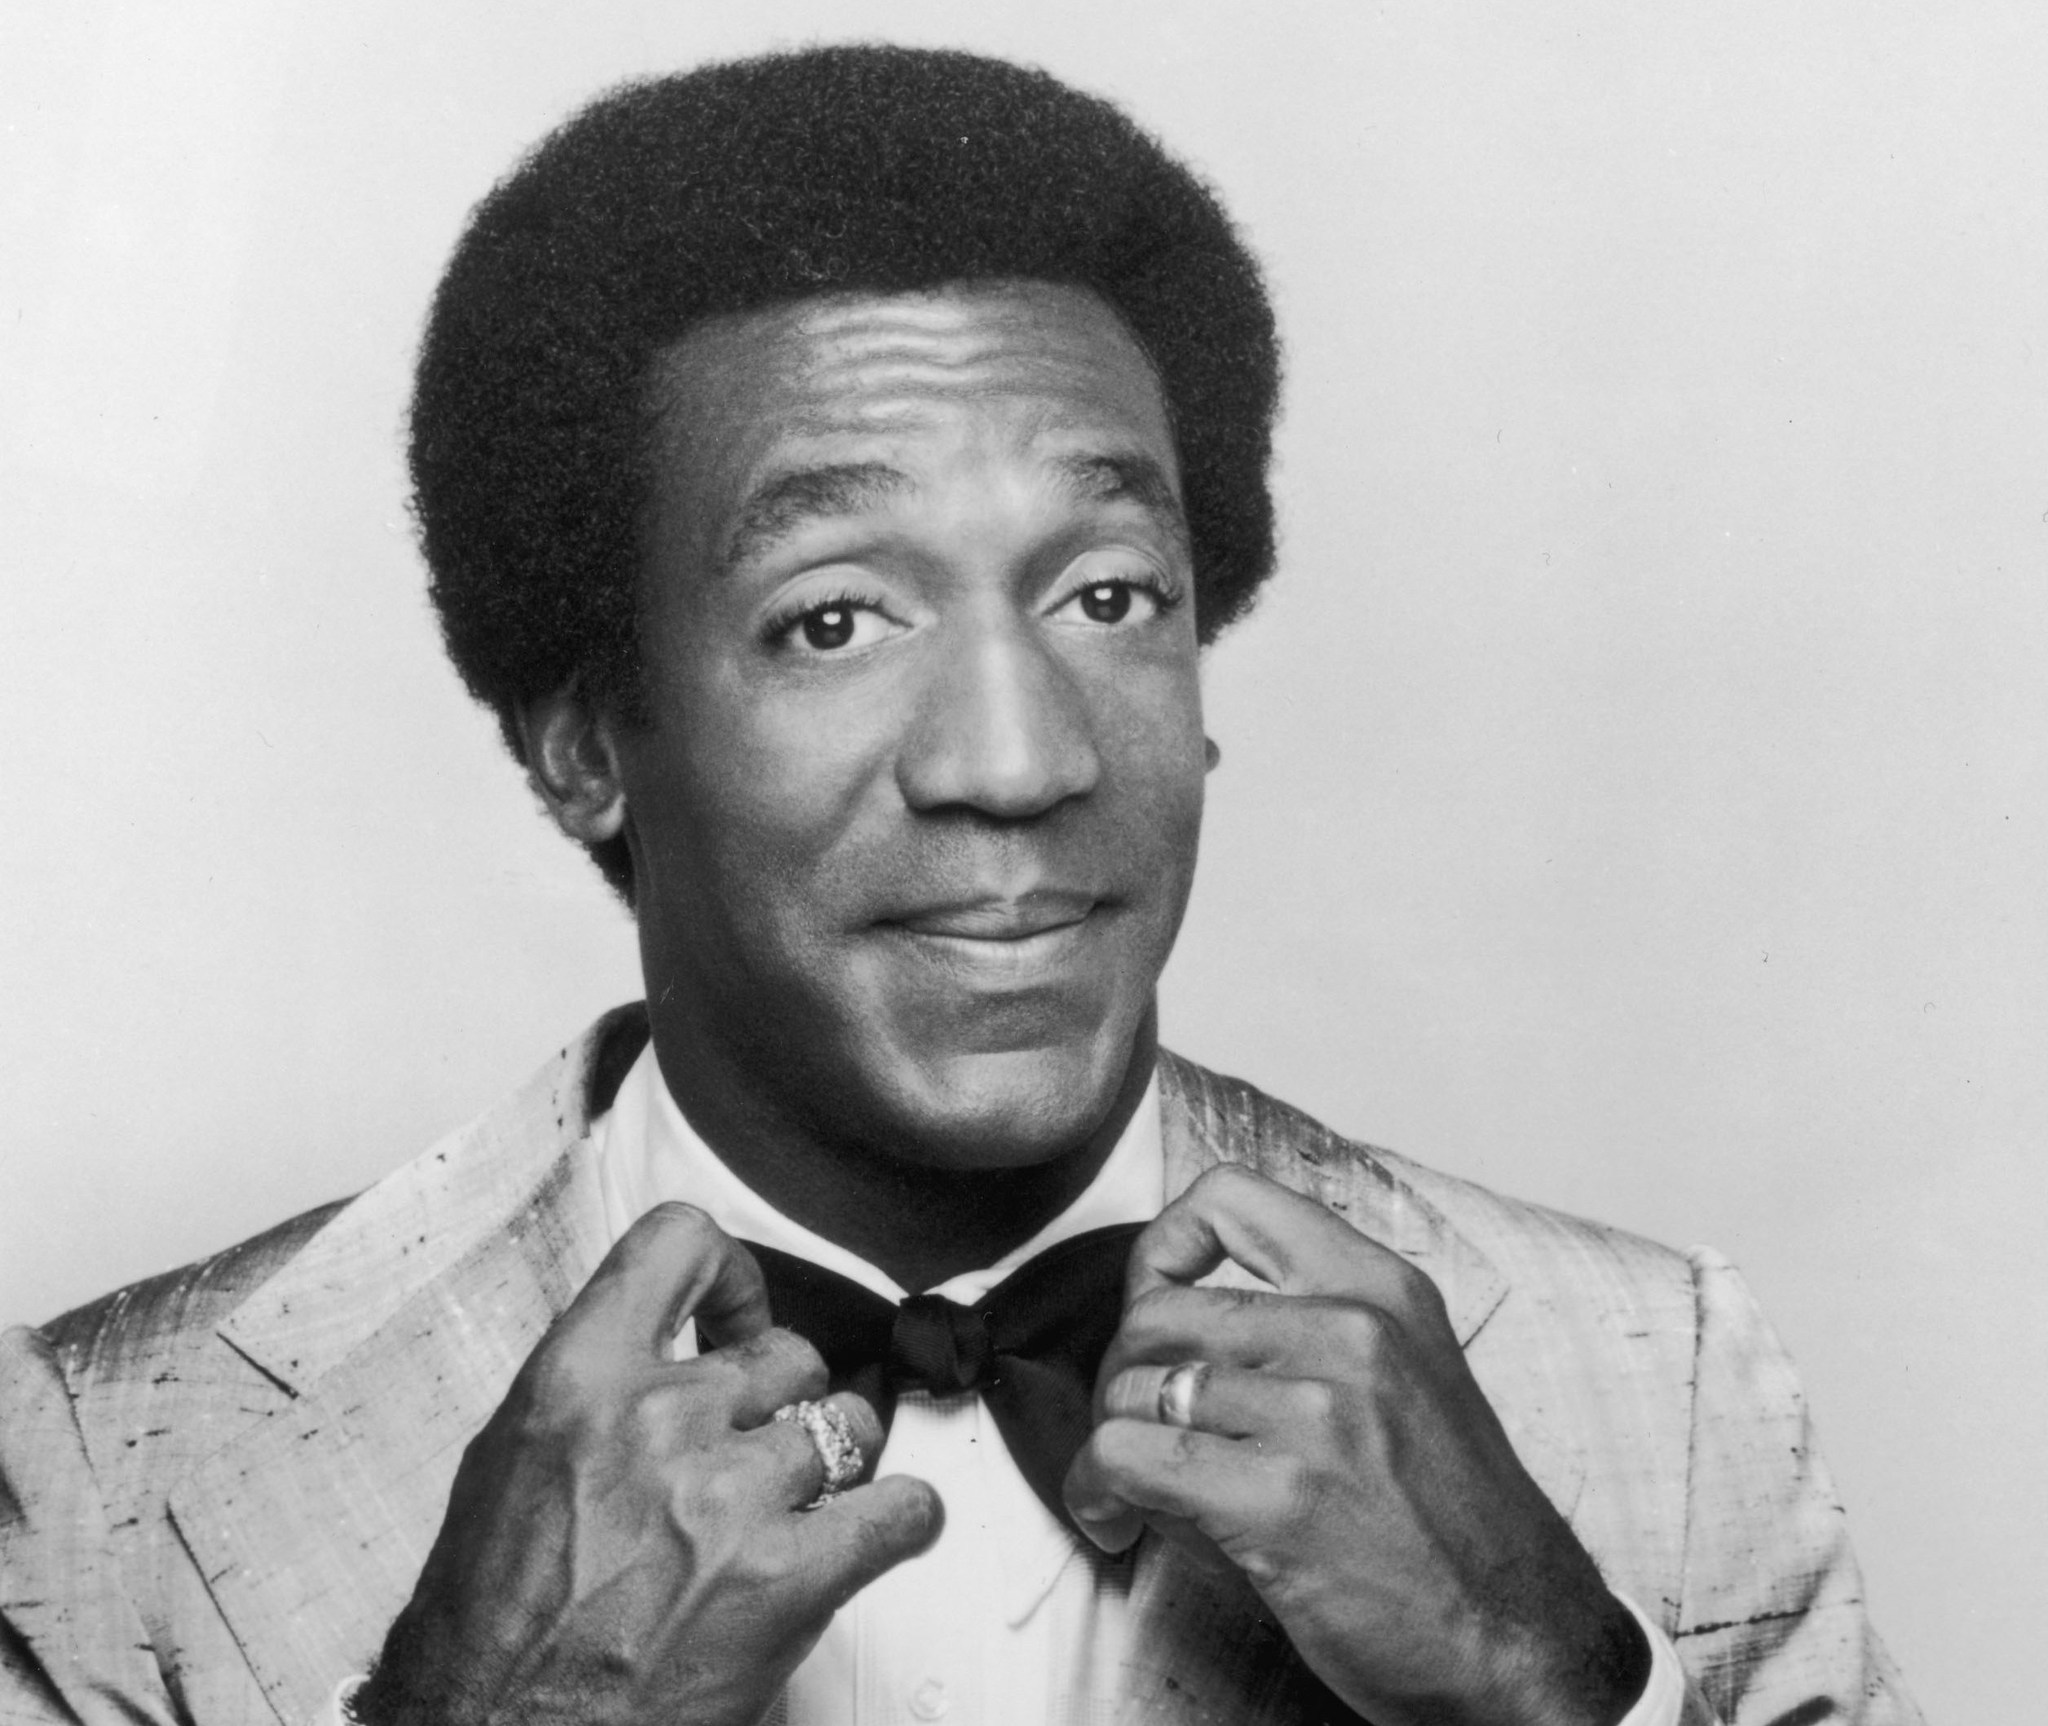 2048x1726 - Bill Cosby Wallpapers 3